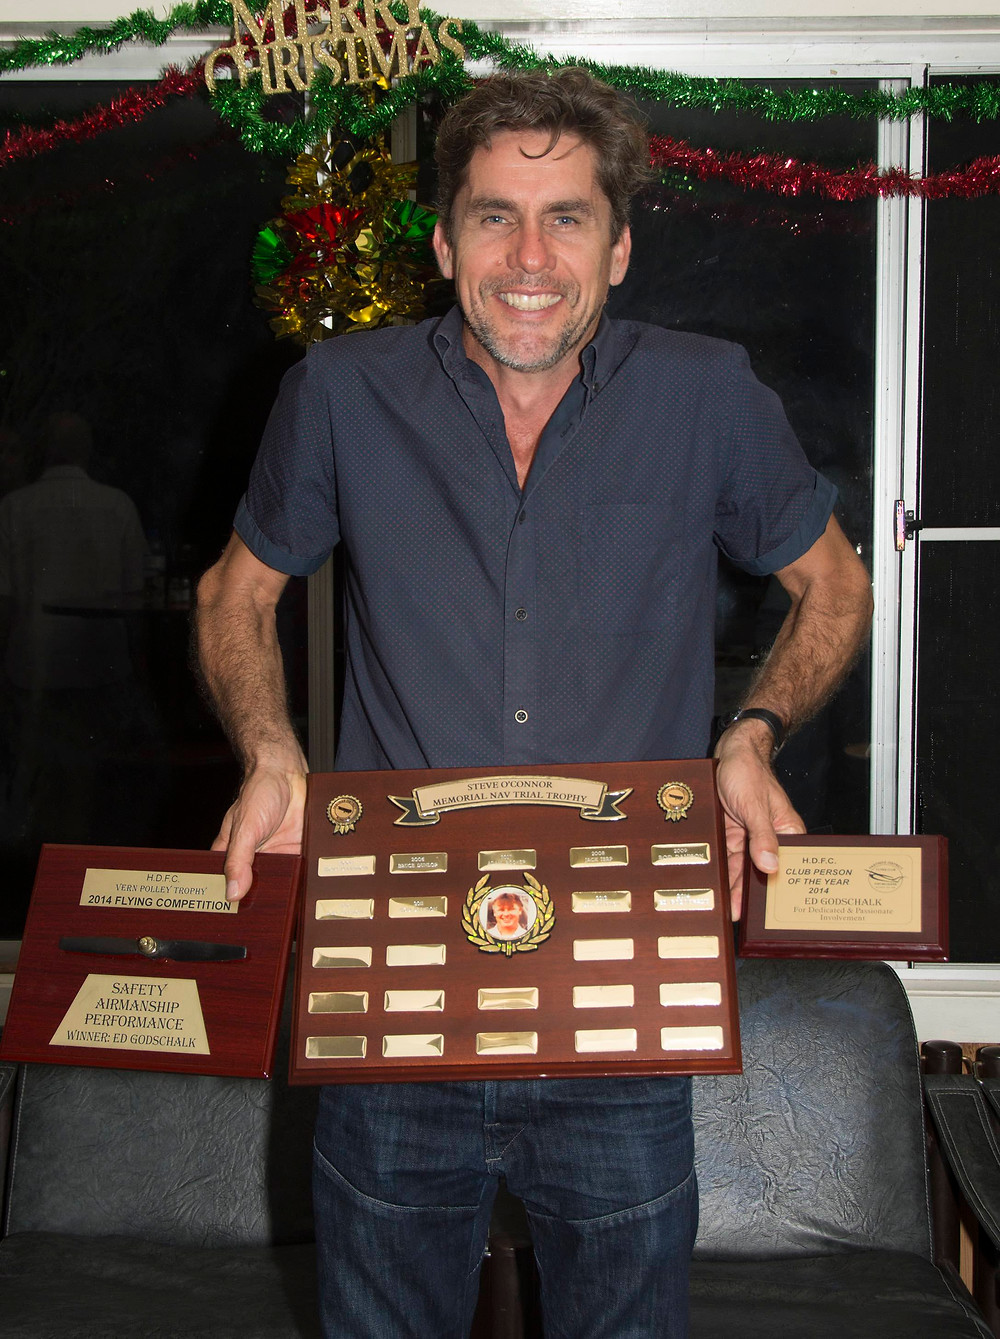 Ed Godschalk club person of the year 2014 | Hastings District Flying Club, Port Macquarie Recreational Aviation | HDFC Port Macquarie